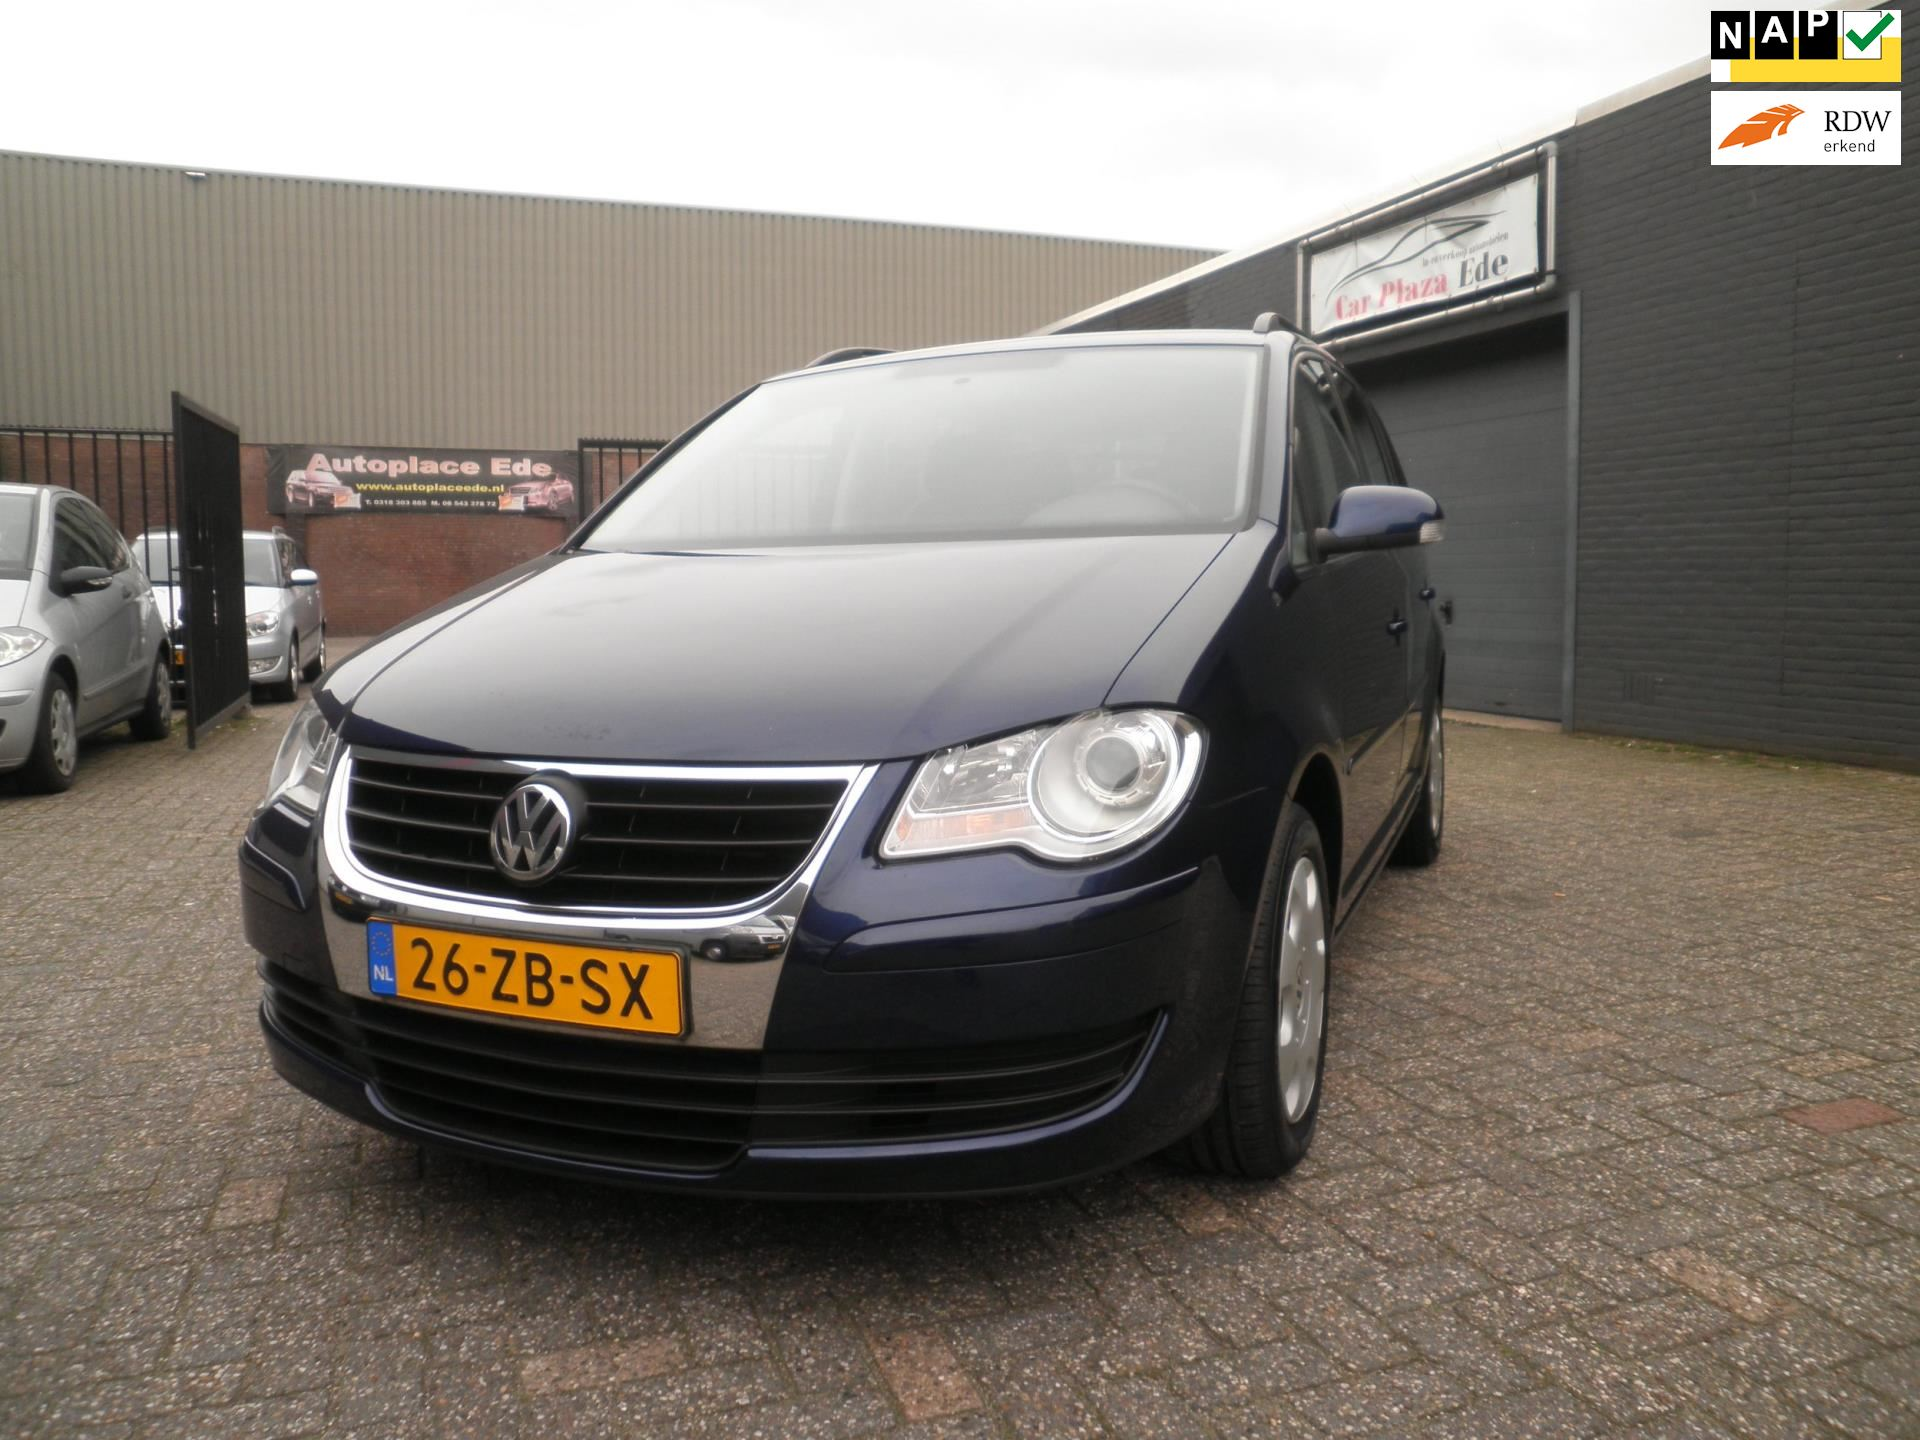 Volkswagen Touran occasion - Carplaza Ede